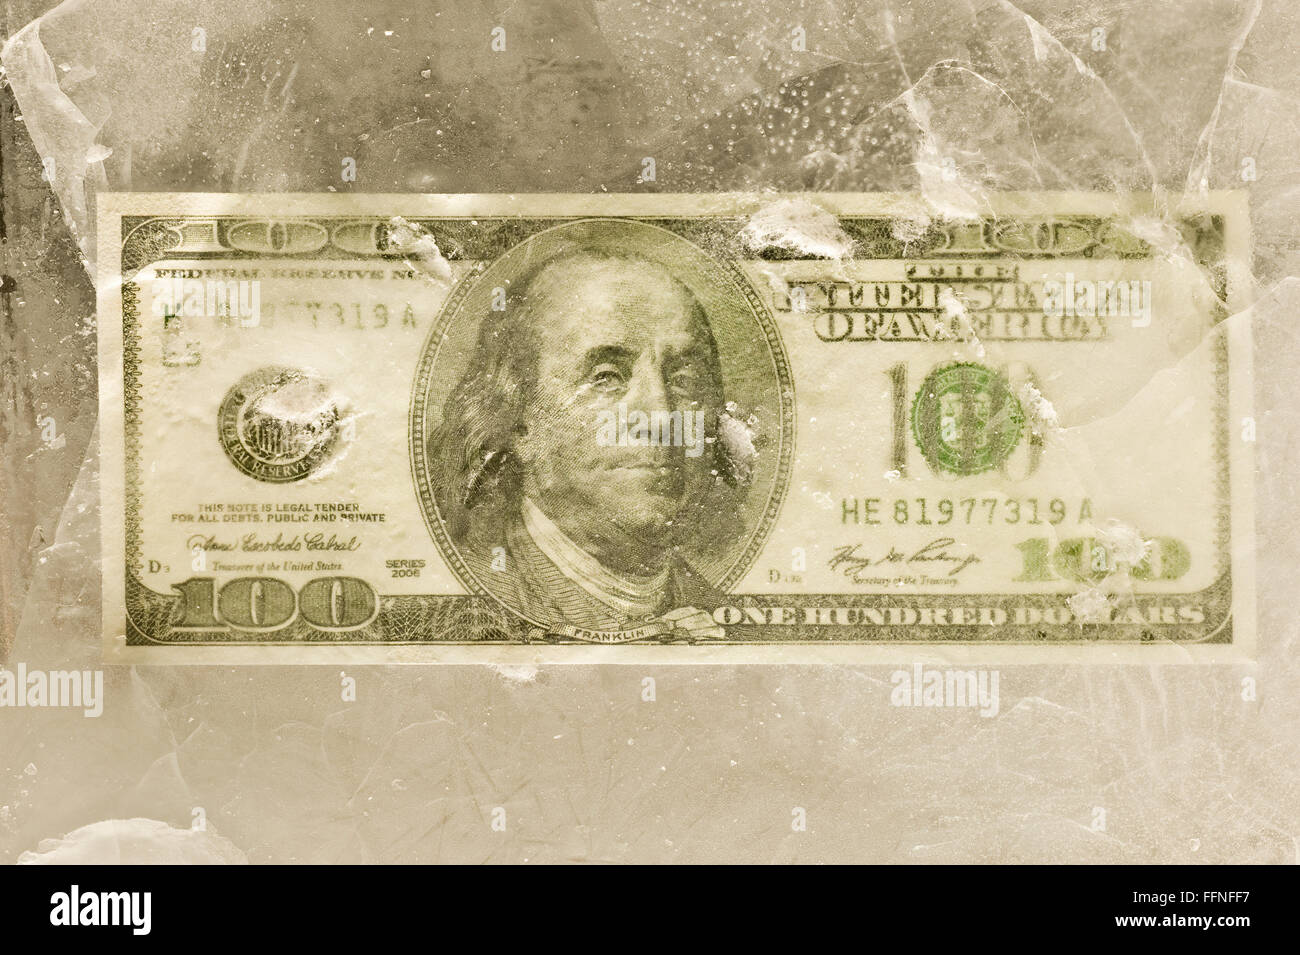 One Hundred Dollar Bill Behind Cracked Ice - Stock Image